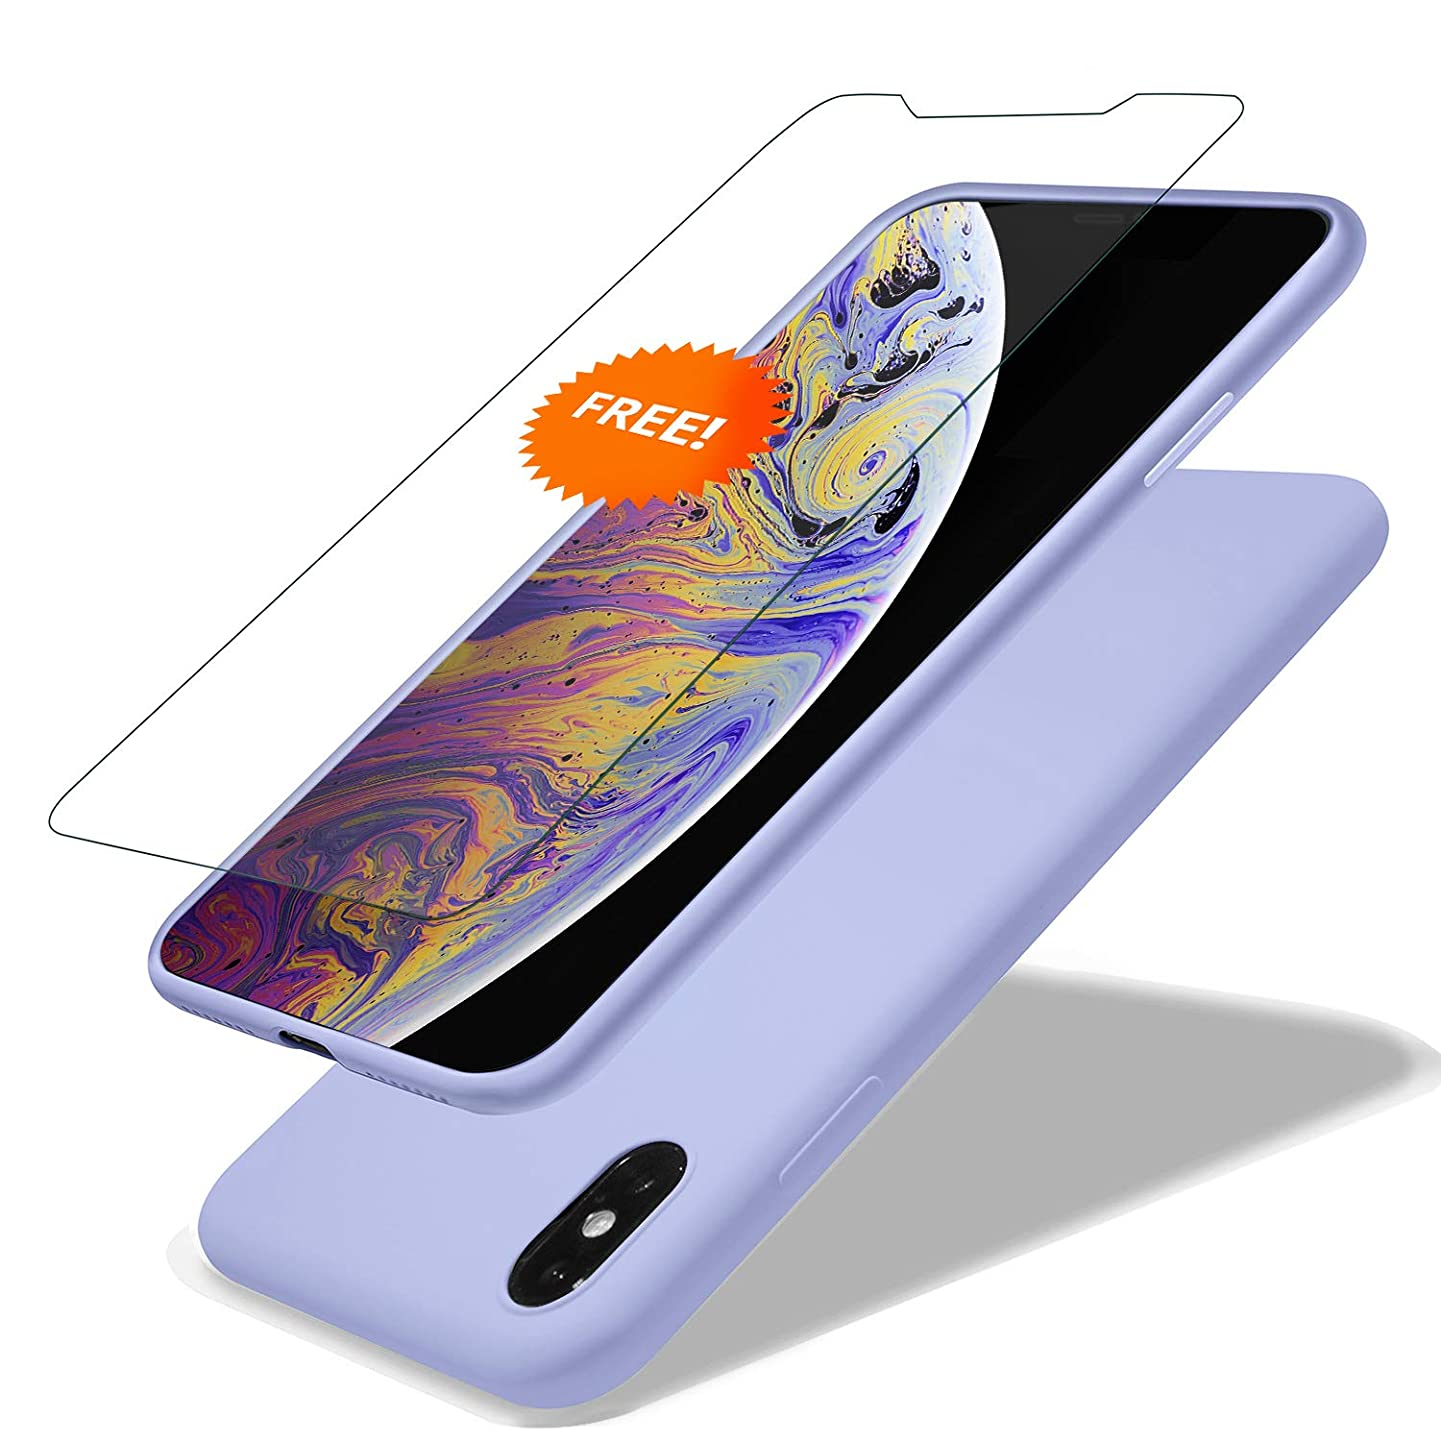 GARLEX-iPhone Xs Max Silicone Case, Ultra Thin Liquid Gel Rubber Phone Cover Case with Hybrid Protection Compatible with iPhone Xs Max 6.5 Inch (2018), Purple